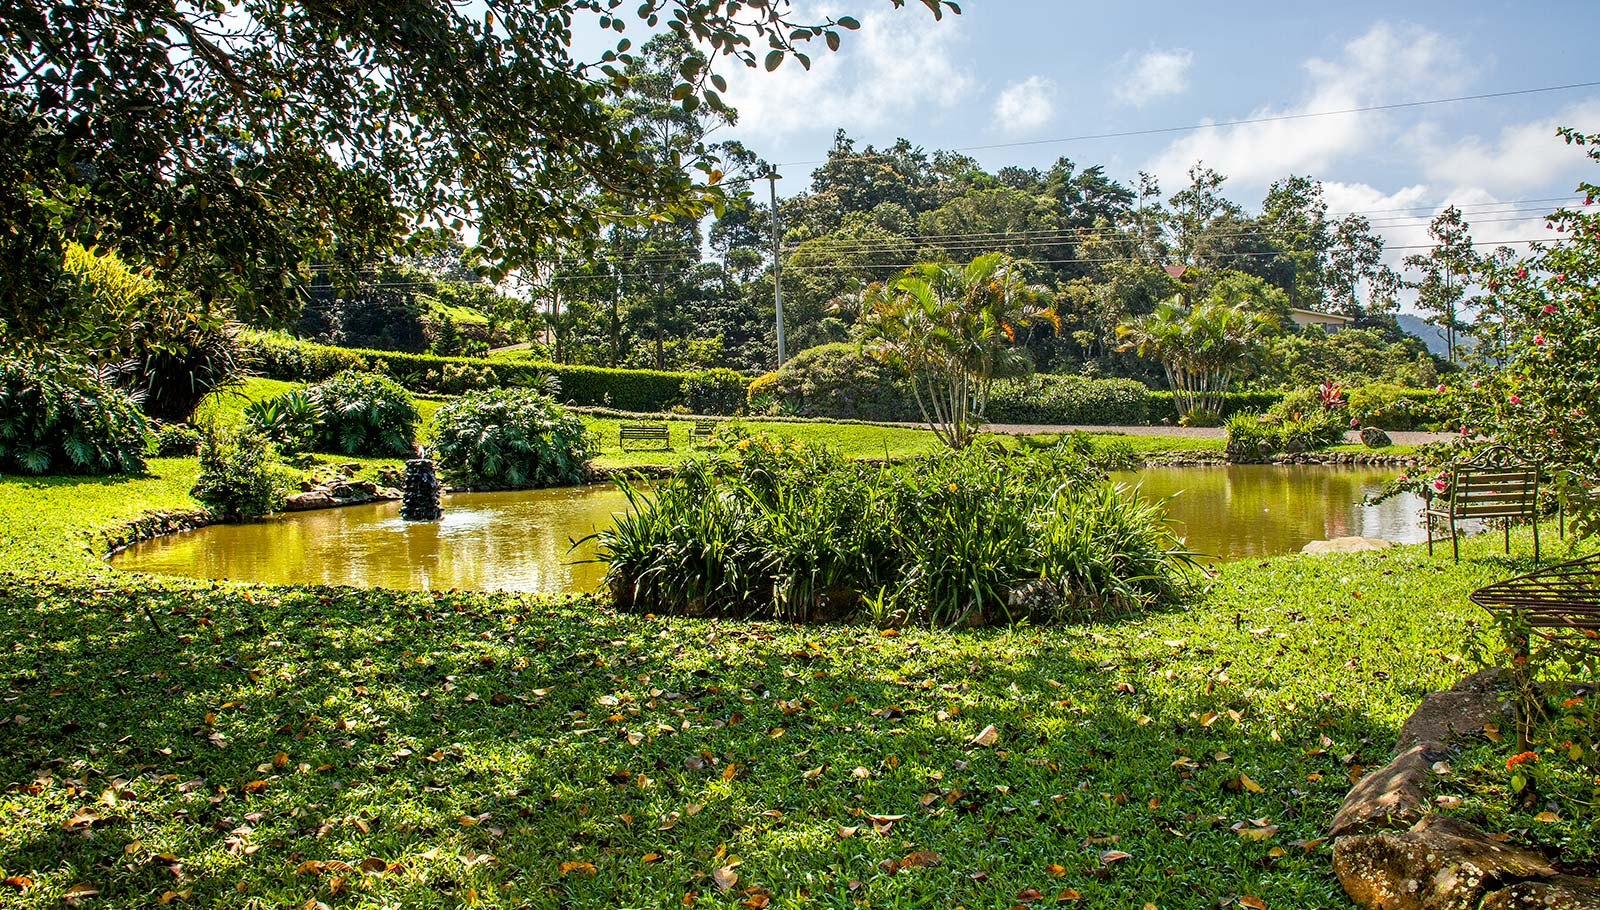 vena view lot for sale in san ramon costa rica, ocean view lot for sale, mountain view lot for sale, buildable lot on gated community in mountains of costa rica, lot with water and electric in costa rica, large lot for sale in central highlands of costa rica.